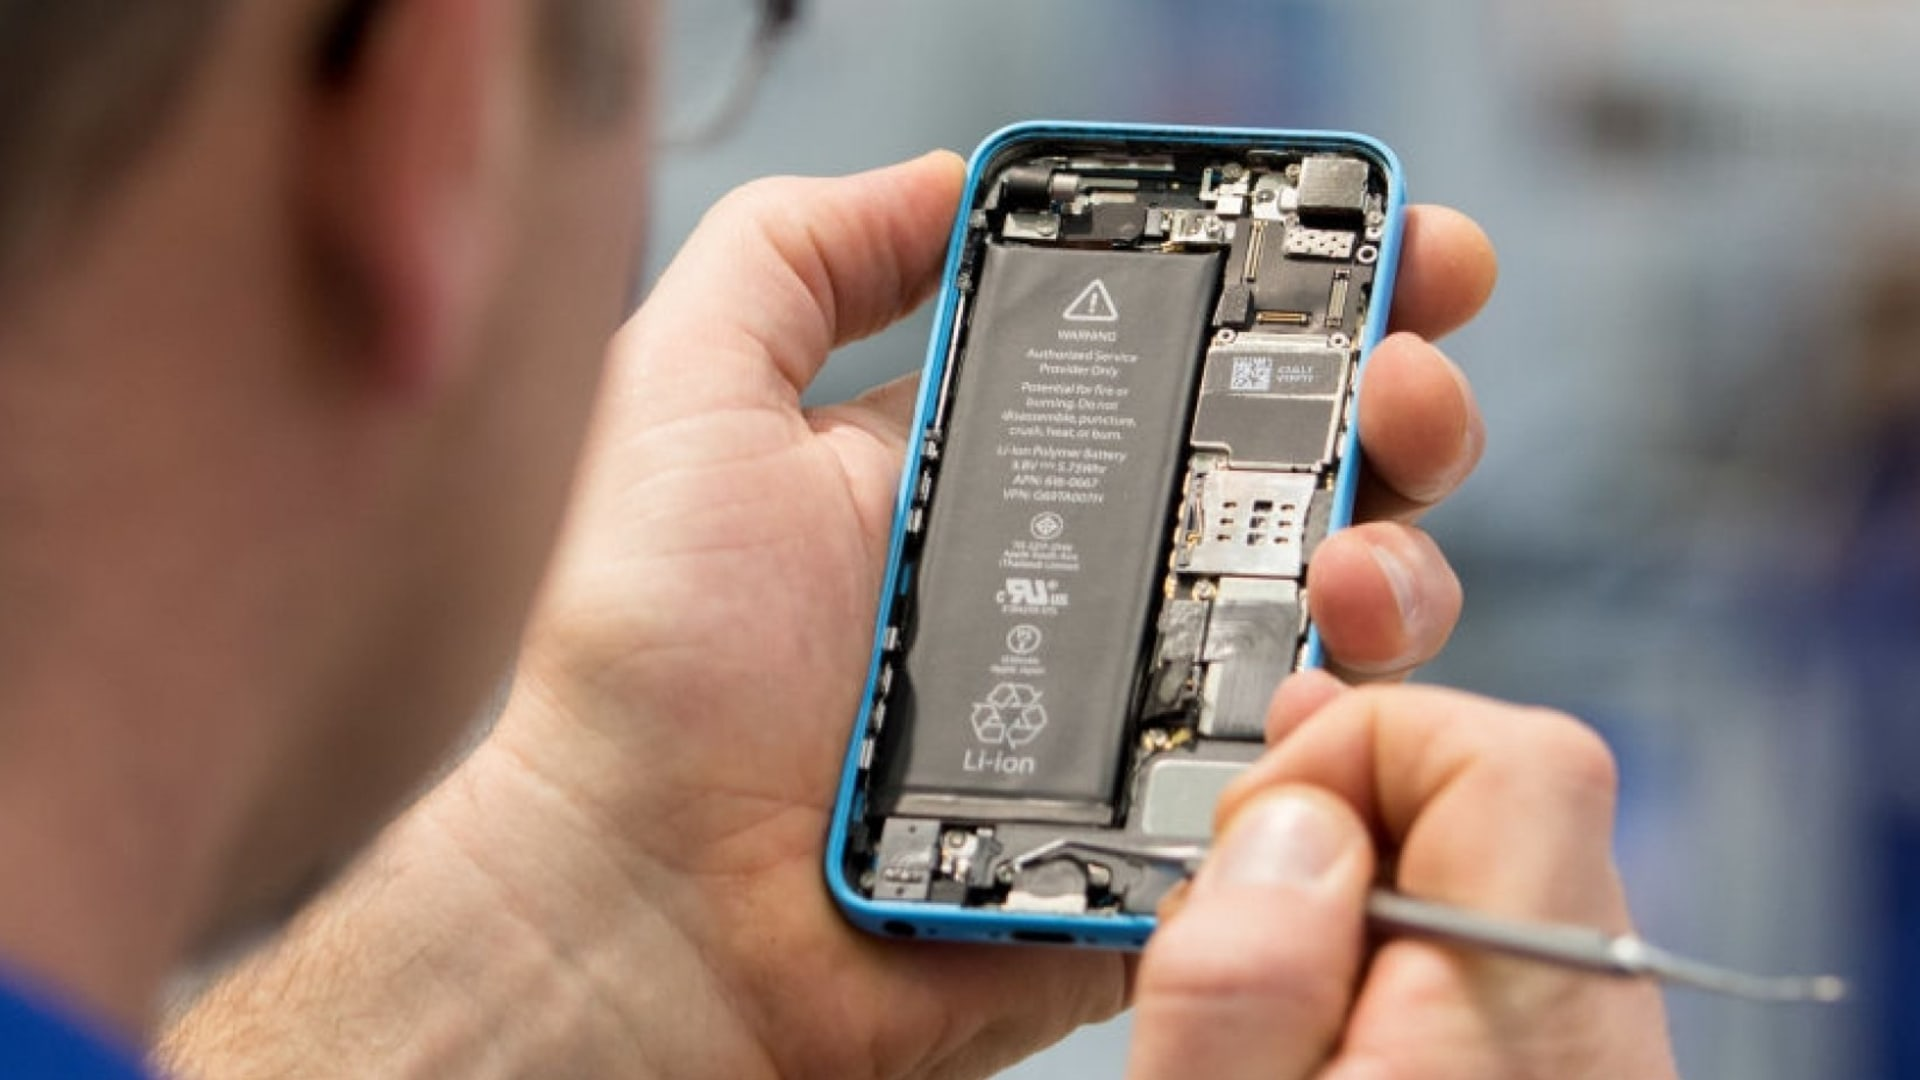 Repair Shops Want to Figure Out How to Fix Your iPhone. Biden Wants to Make Sure They Can